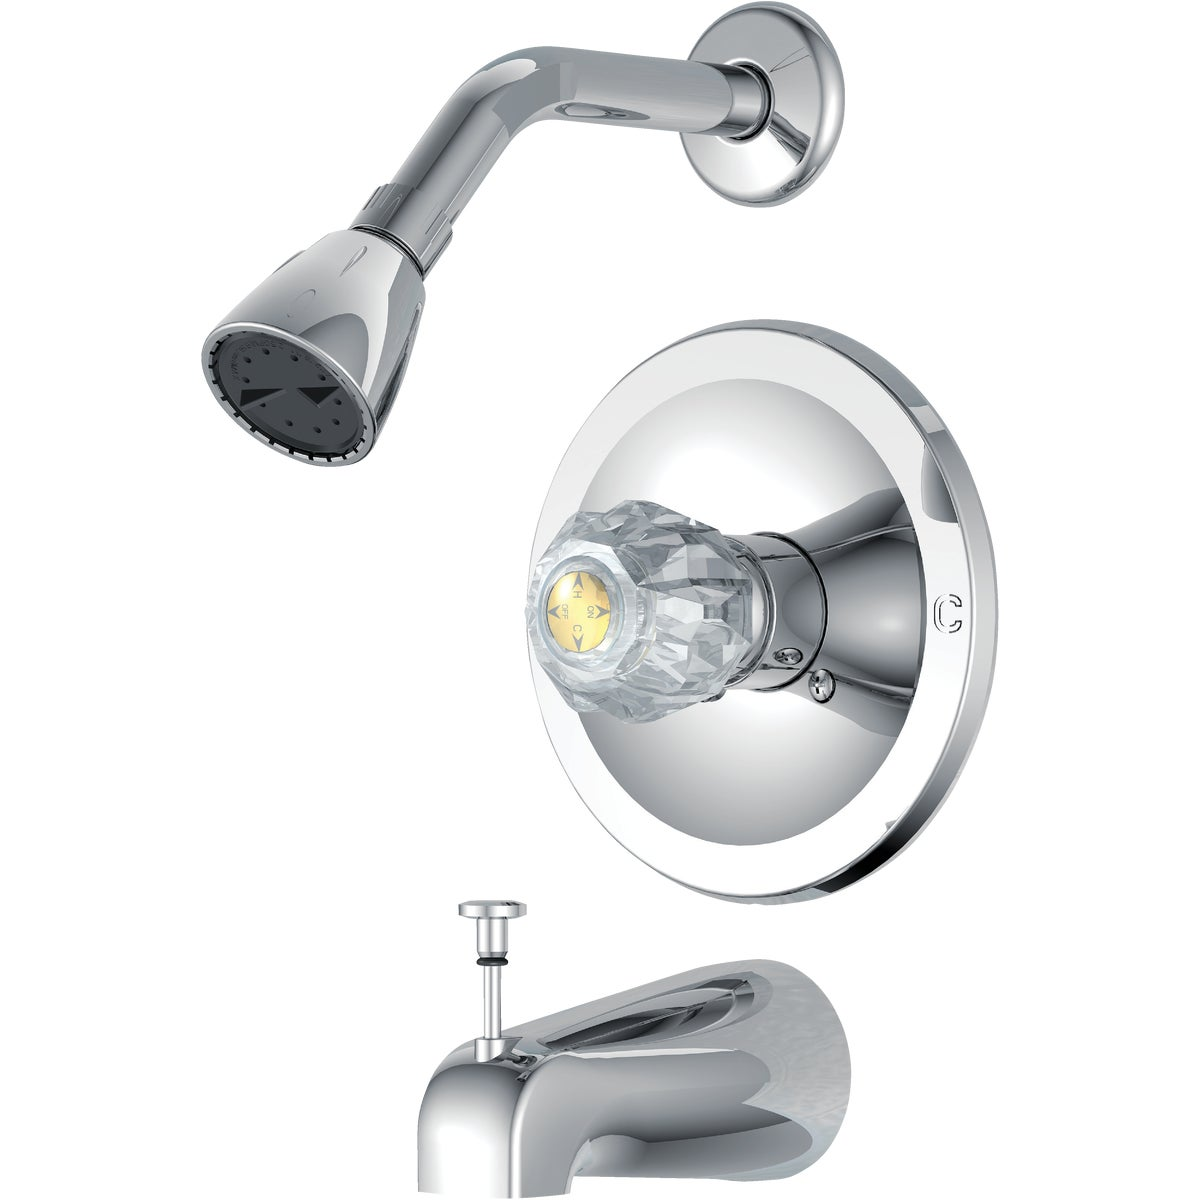 CHR TUB/SHOWER FAUCET - F1010500CP-JPA1 by Globe Union